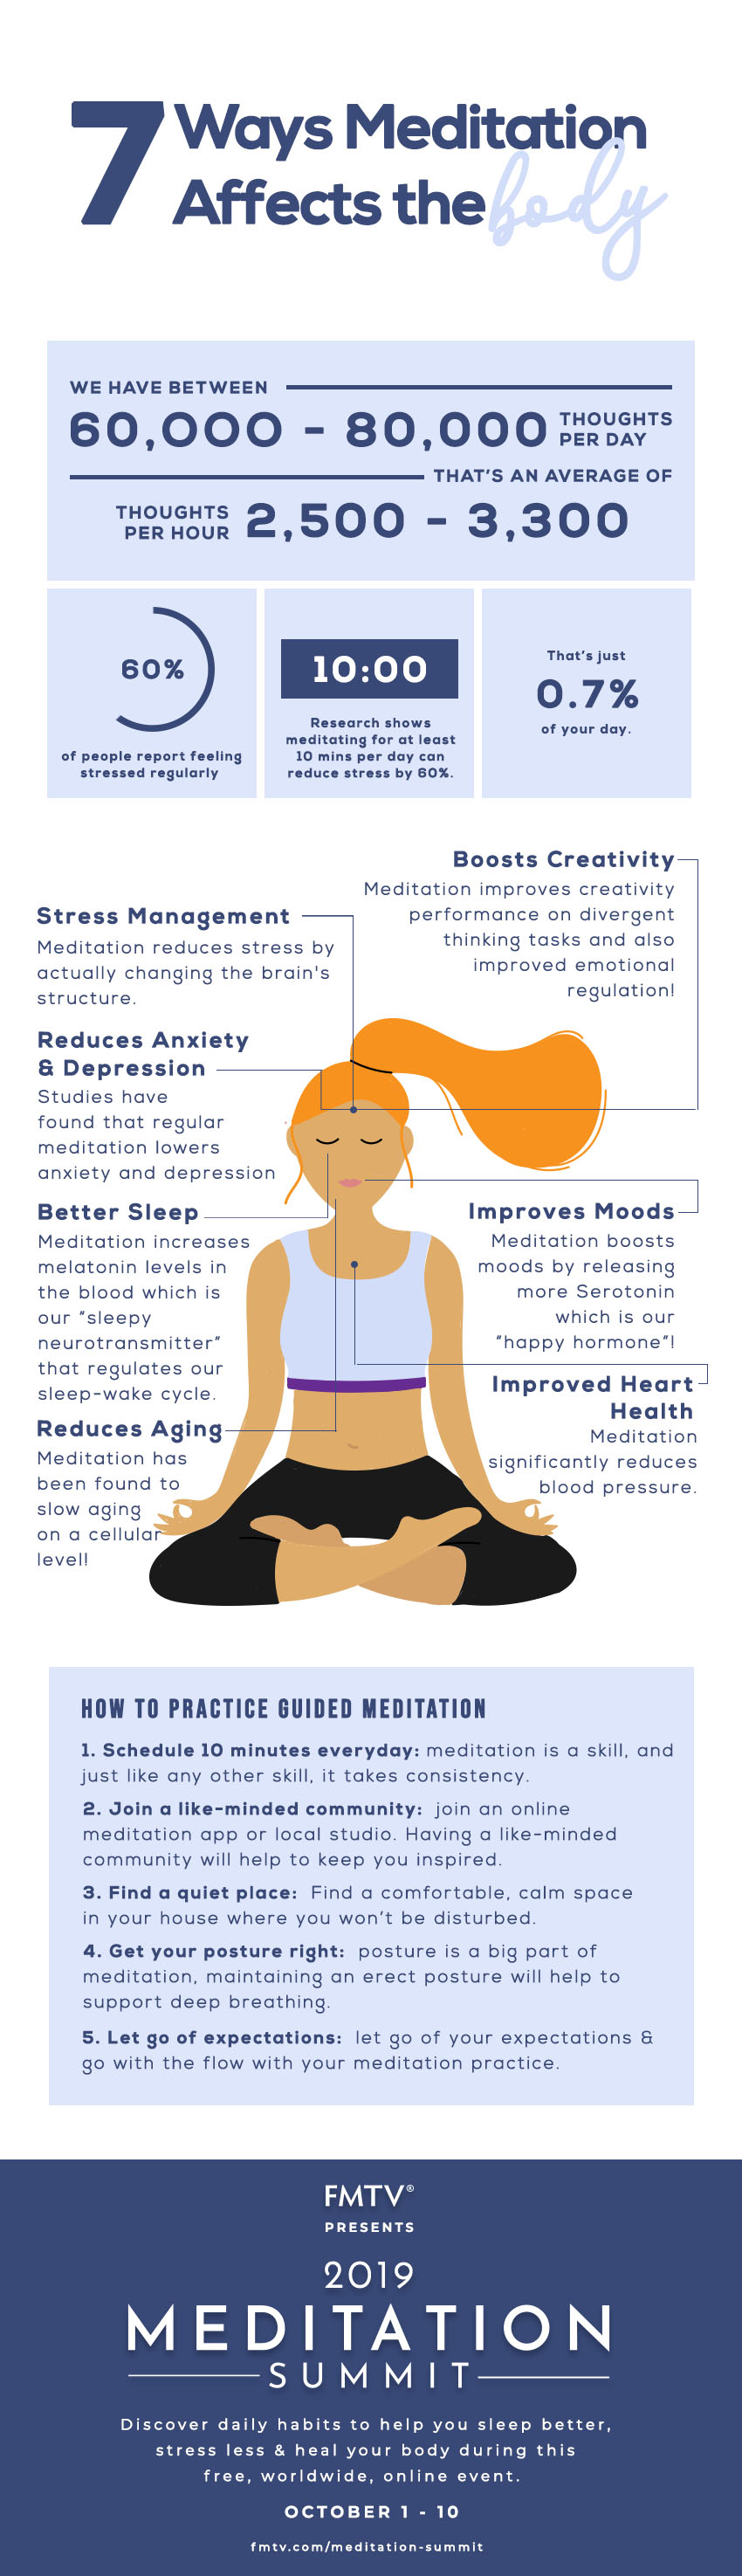 7 Ways Meditation Affects the Body #infographic #Health & Fitness #Yoga #Meditation Affects #Body